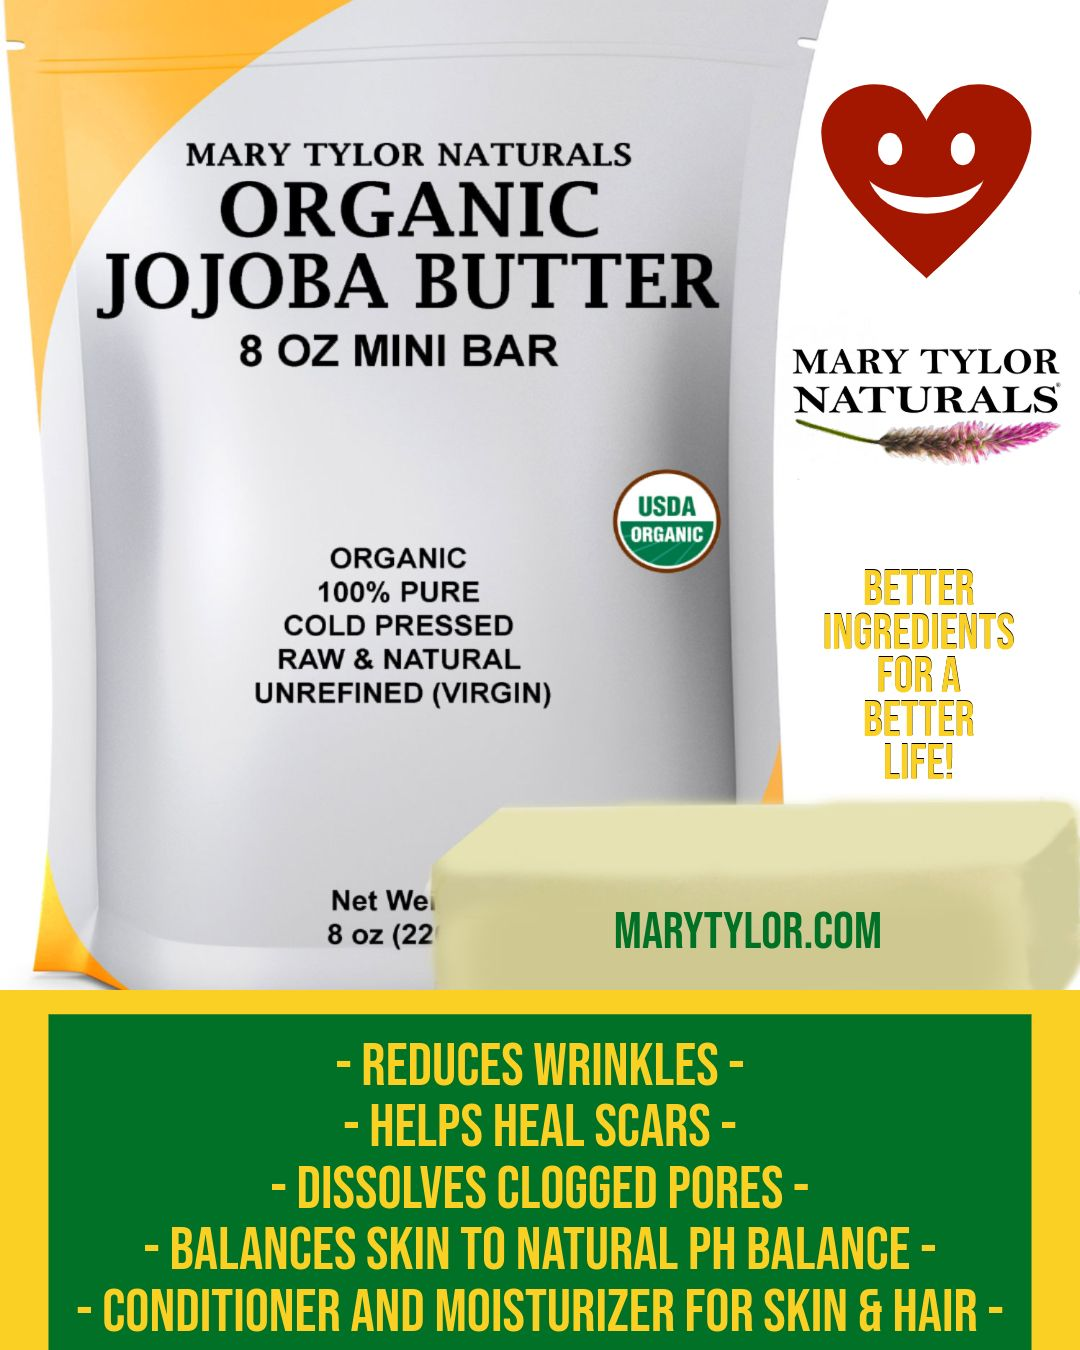 Organic Jojoba Butter - What is it? How is it Pronounced? & How can it help your family...